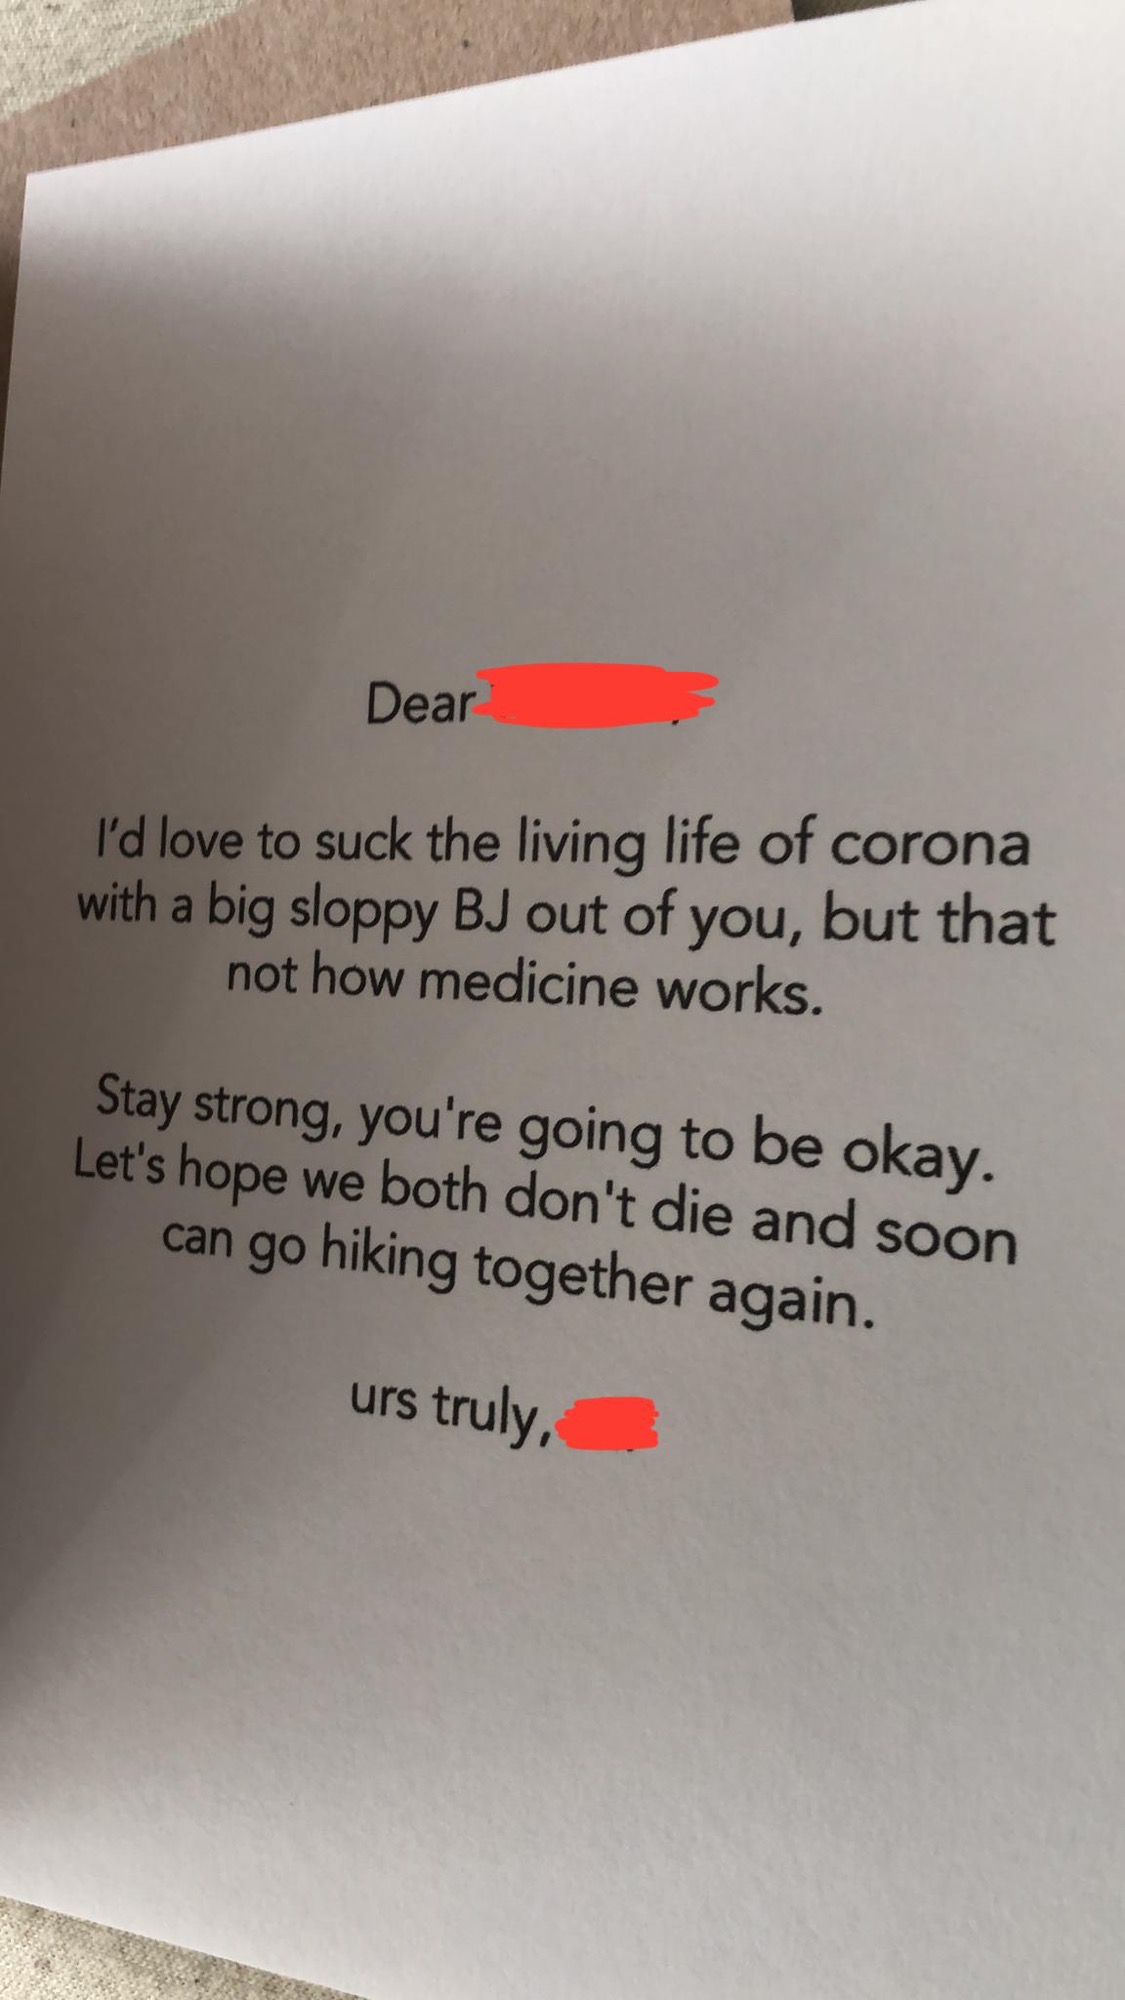 [Image] A friend of mine is in quarantine due to covid and he just got flowers and this from one of his tinder dates. Get motivated.